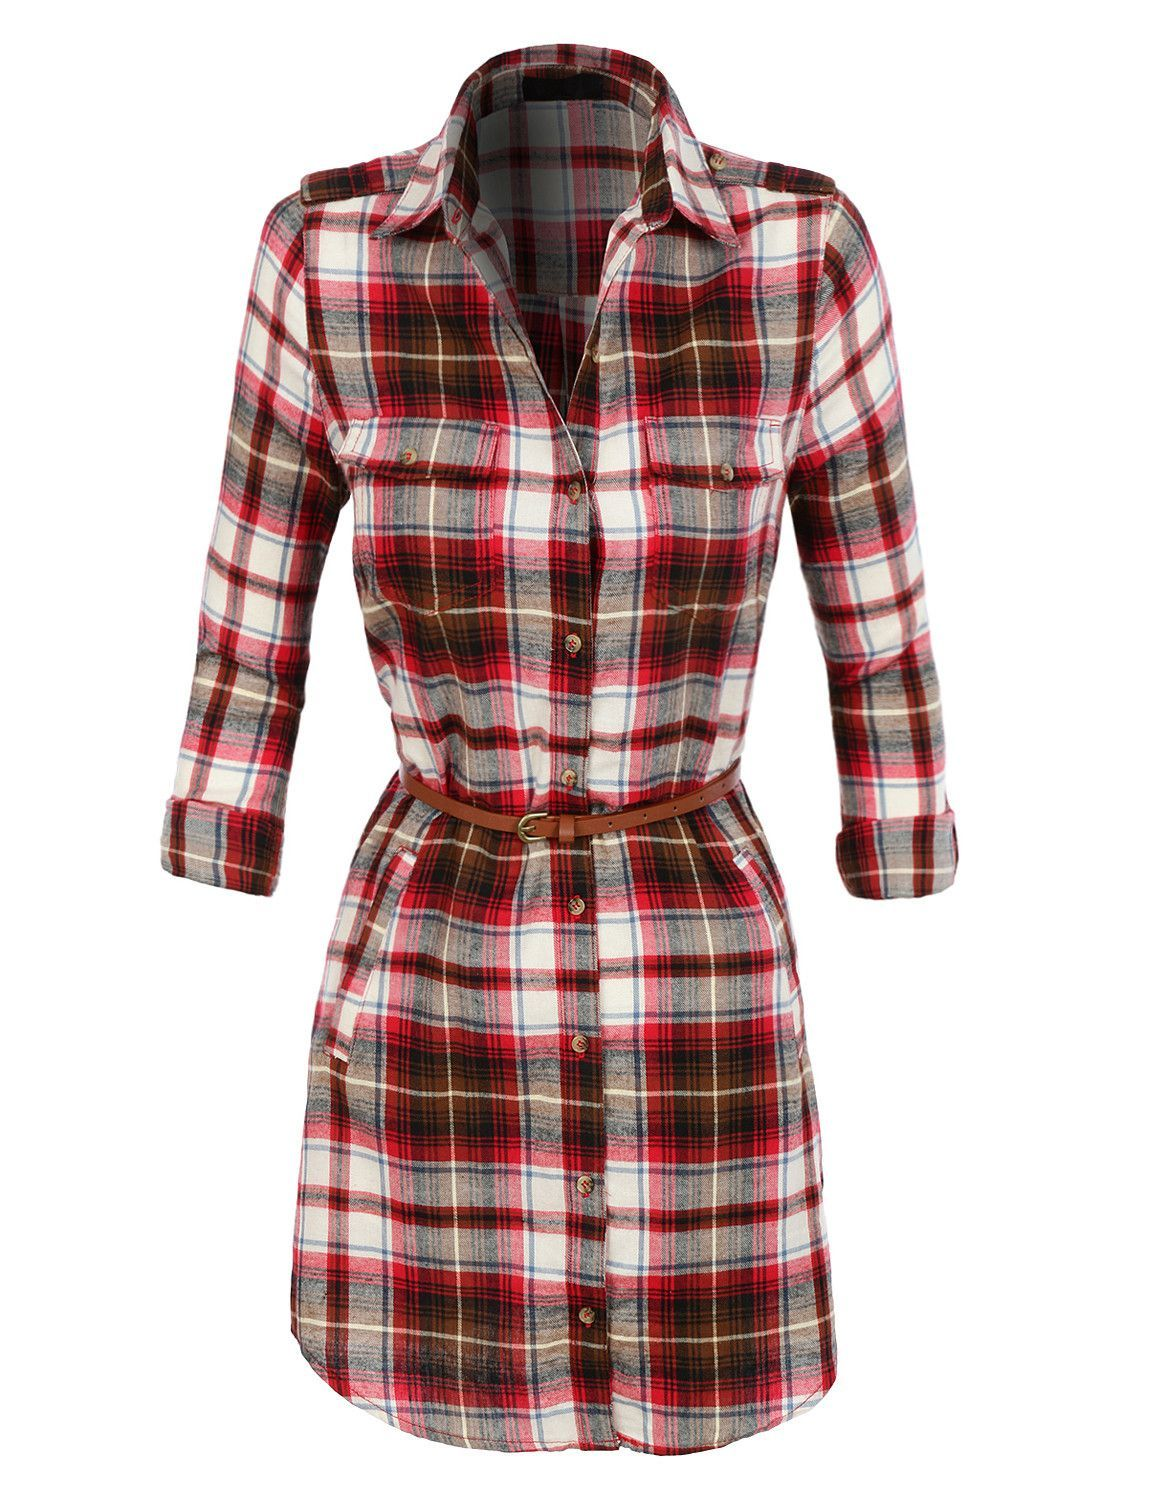 Flannel dress womens  LENO Womens Lightweight Flannel Plaid Dress with Faux Leather Belt